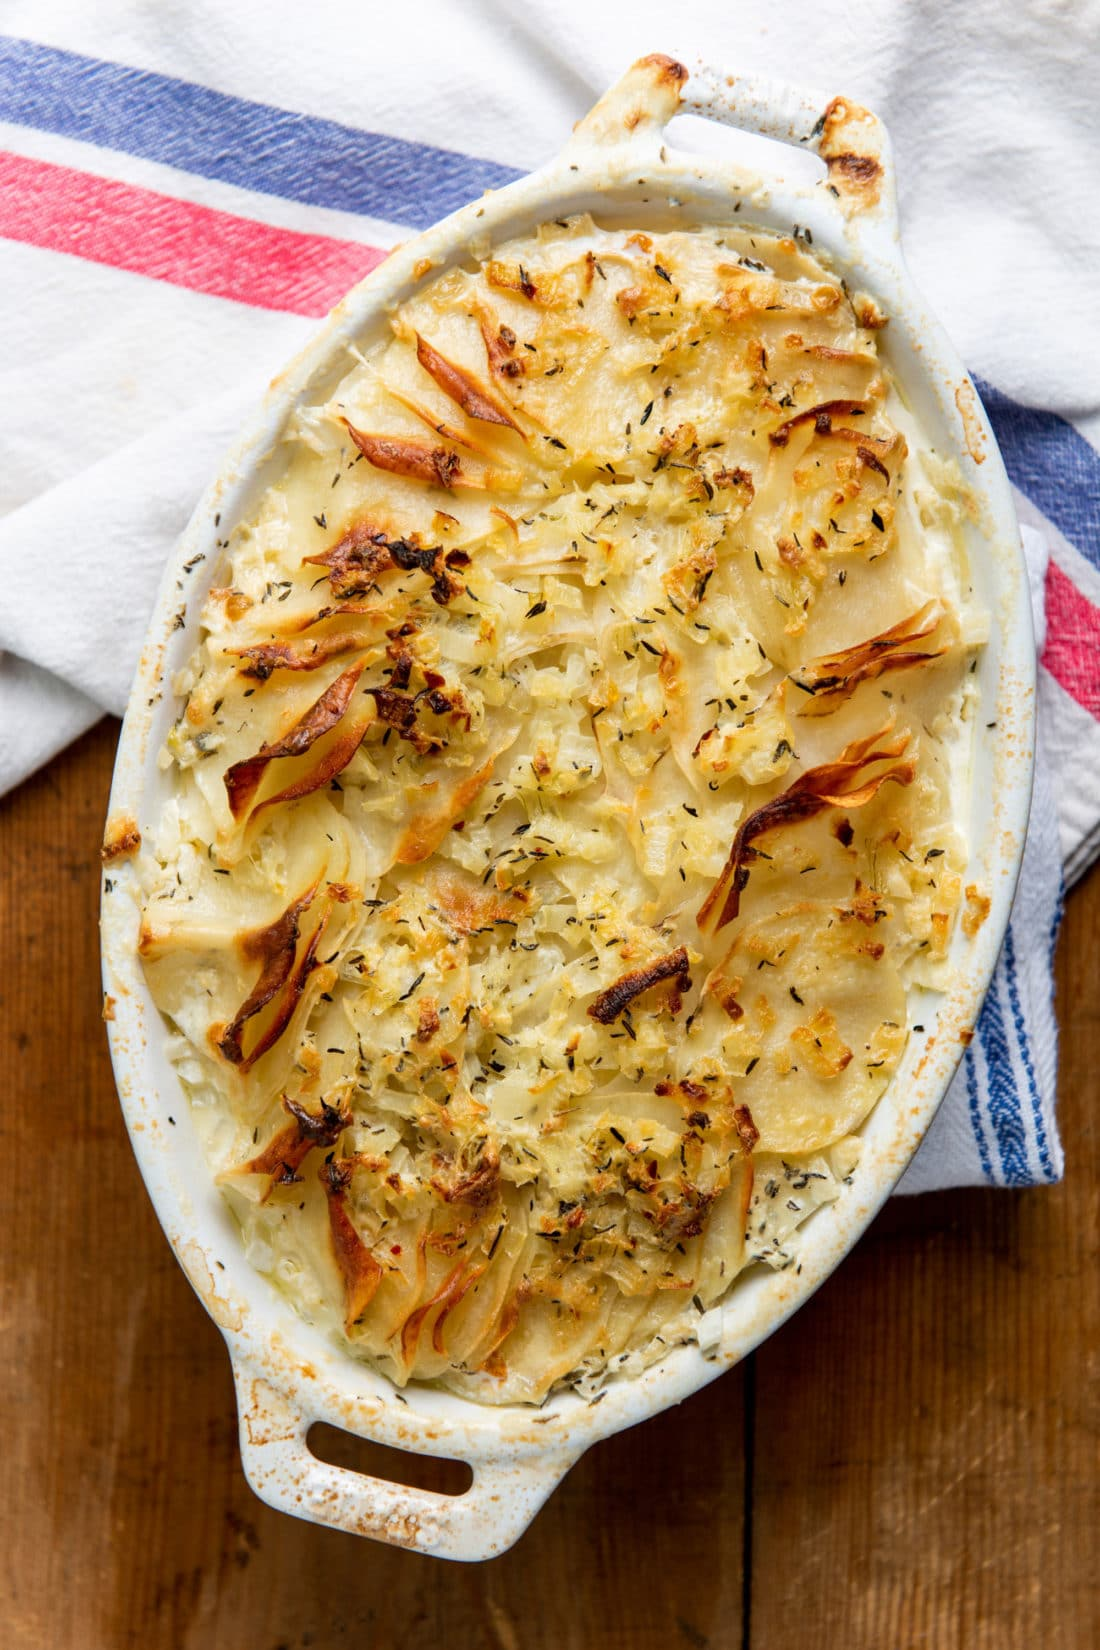 Creamy Scalloped Potatoes with no cheese